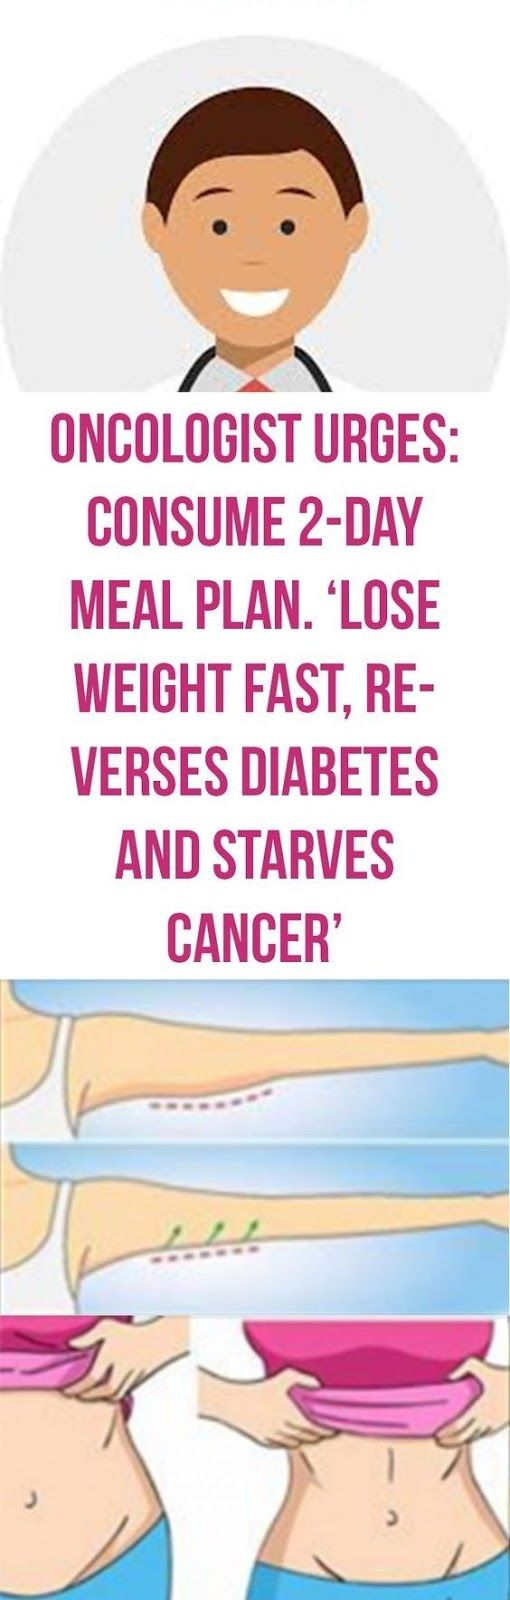 Types of weight loss surgery comparison image 3